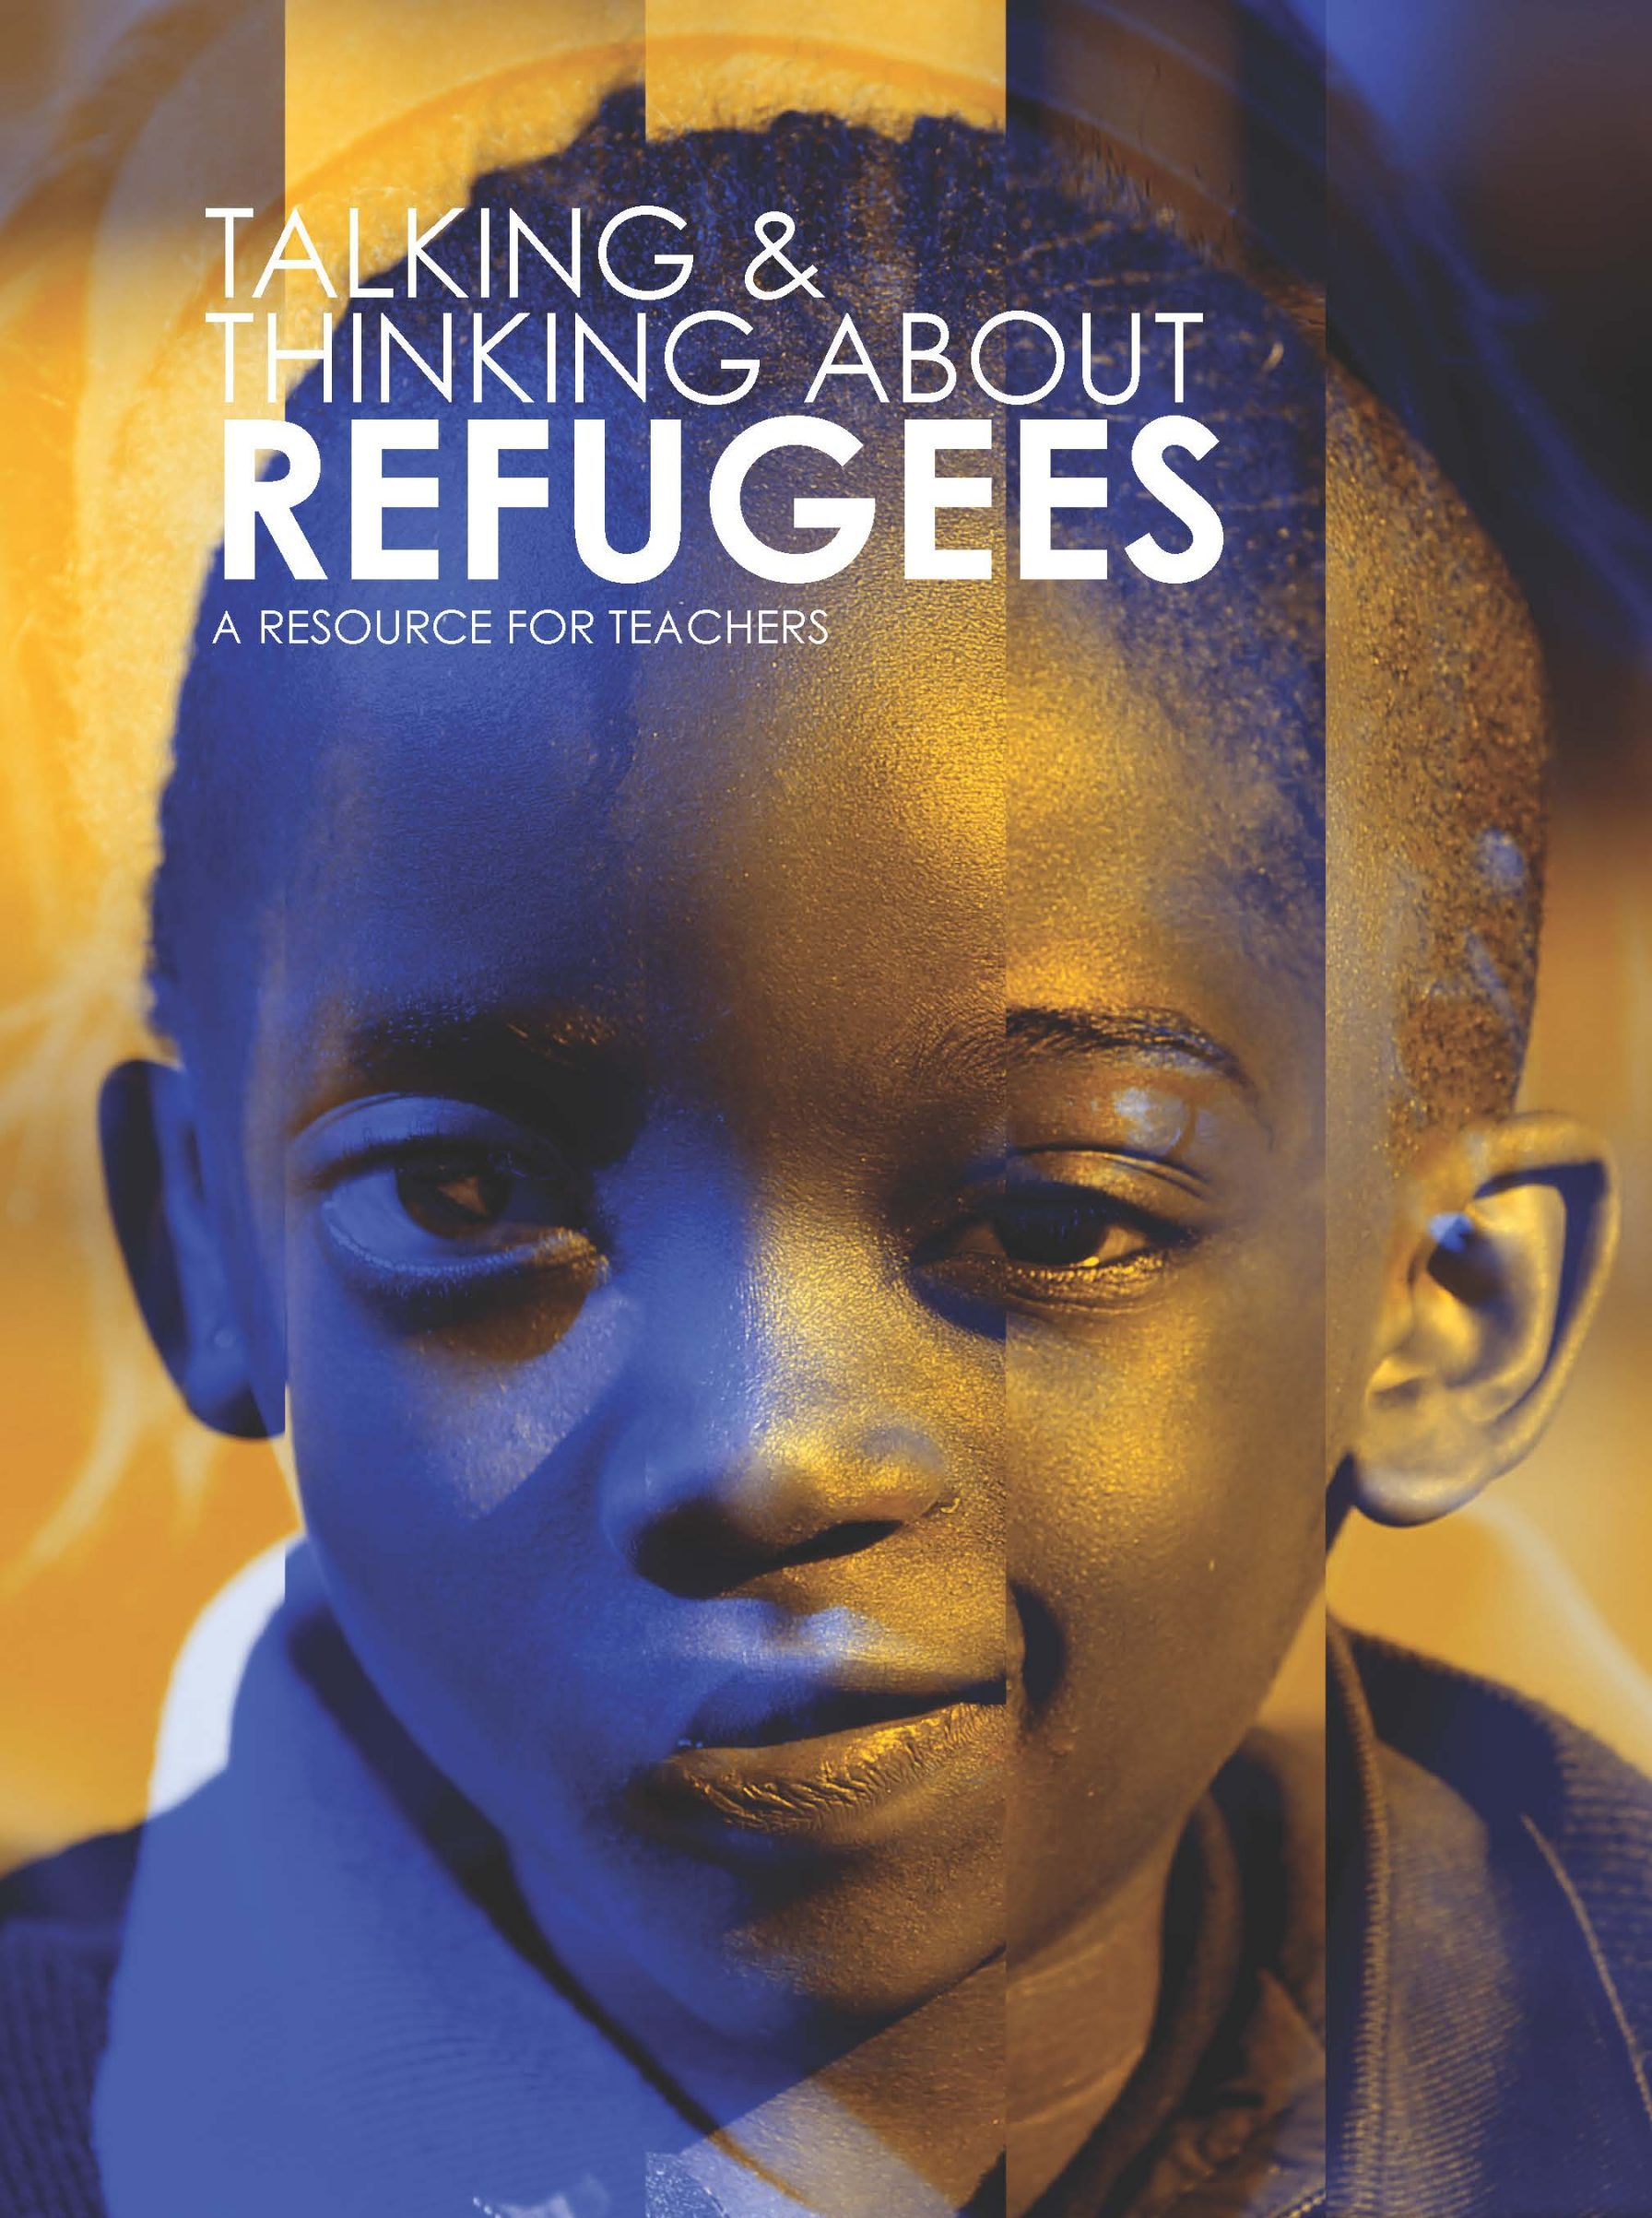 Thinking and Talking About Refugees FINAL v1